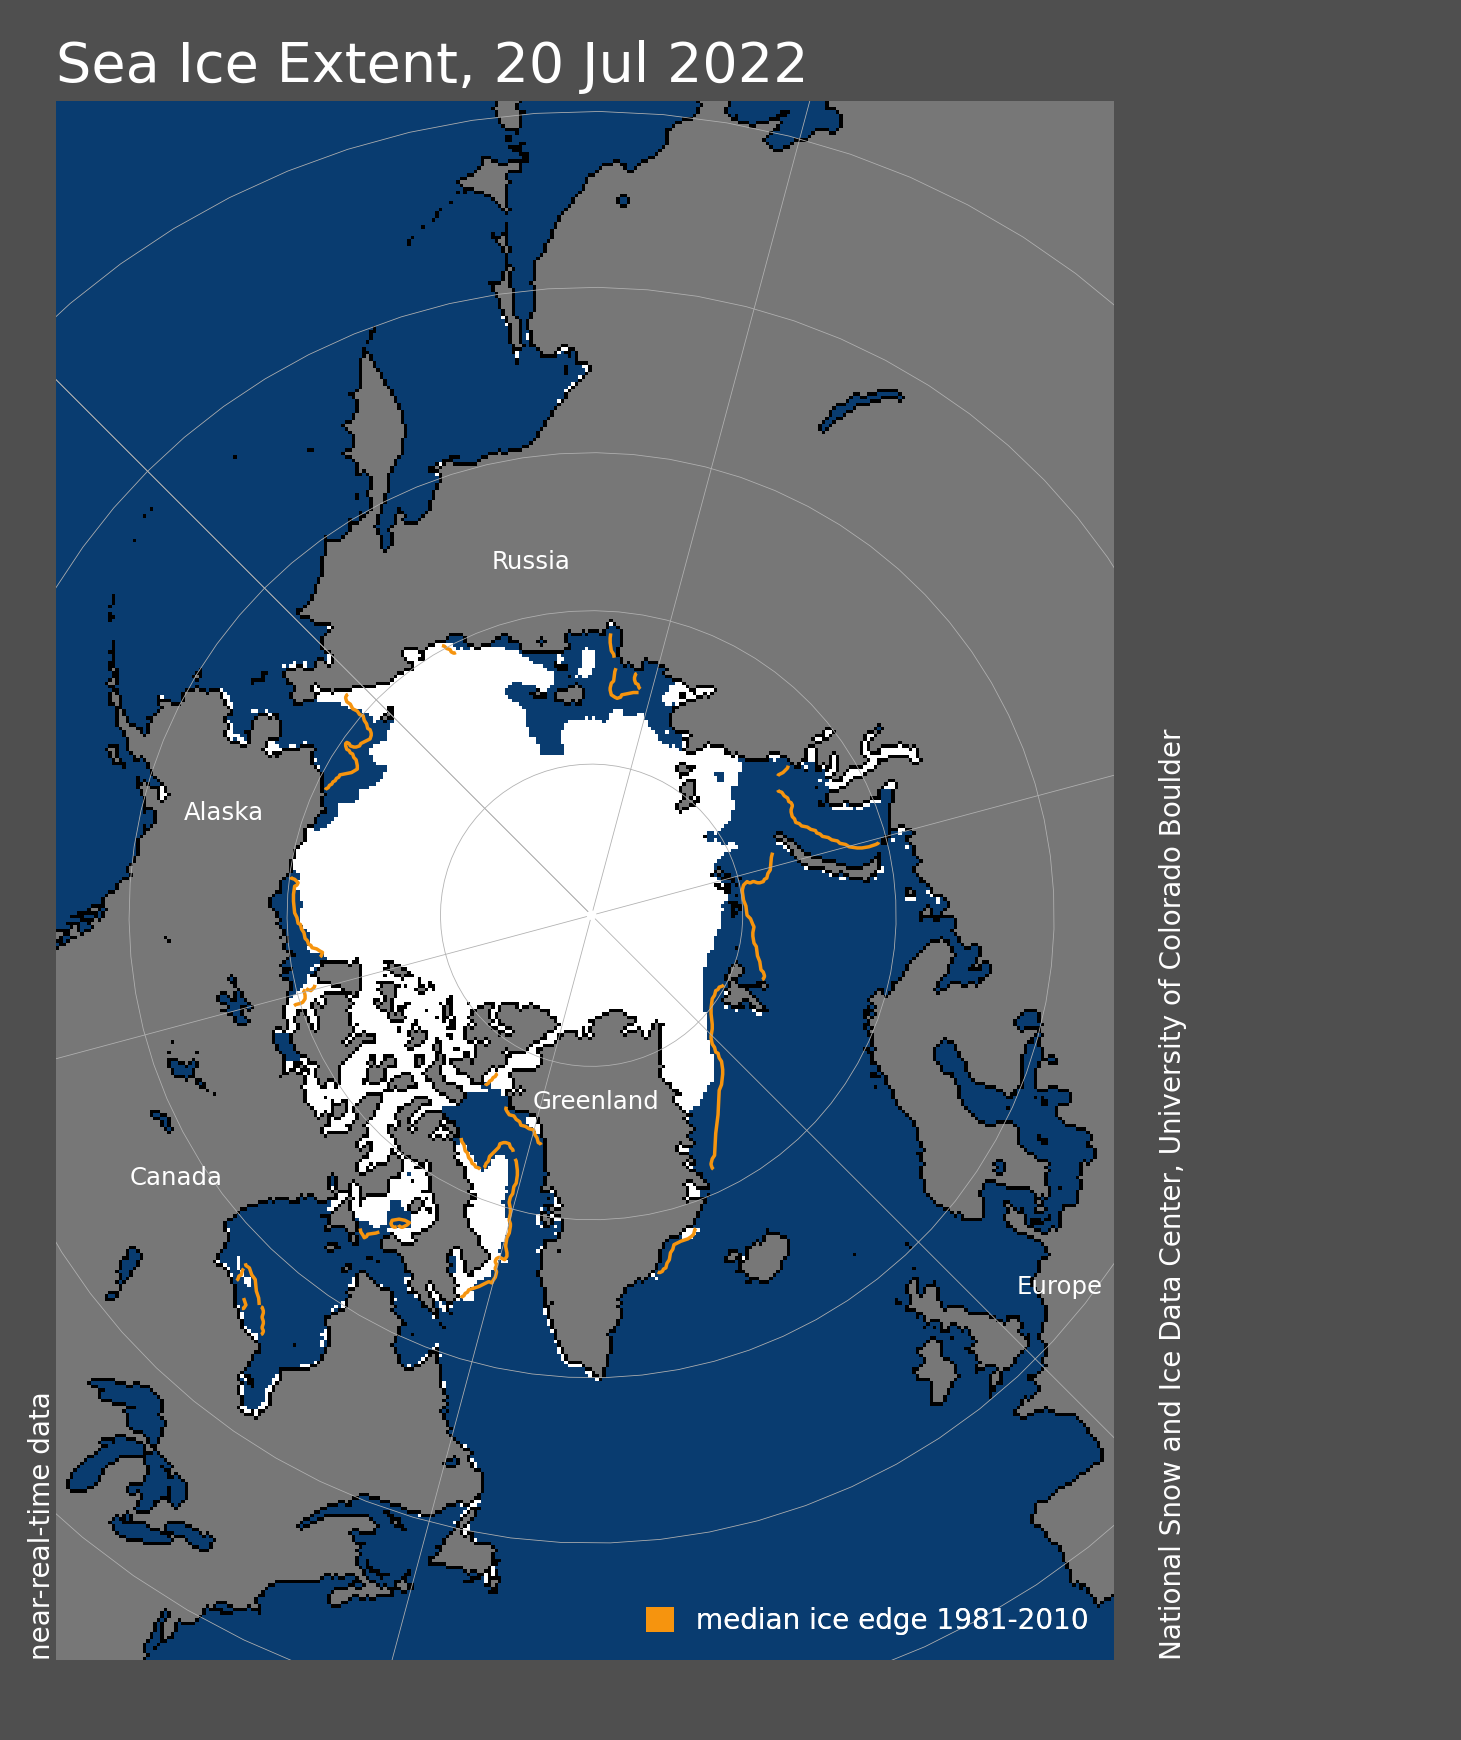 Arctic Sea Ice News and Analysis | Sea ice data updated daily with